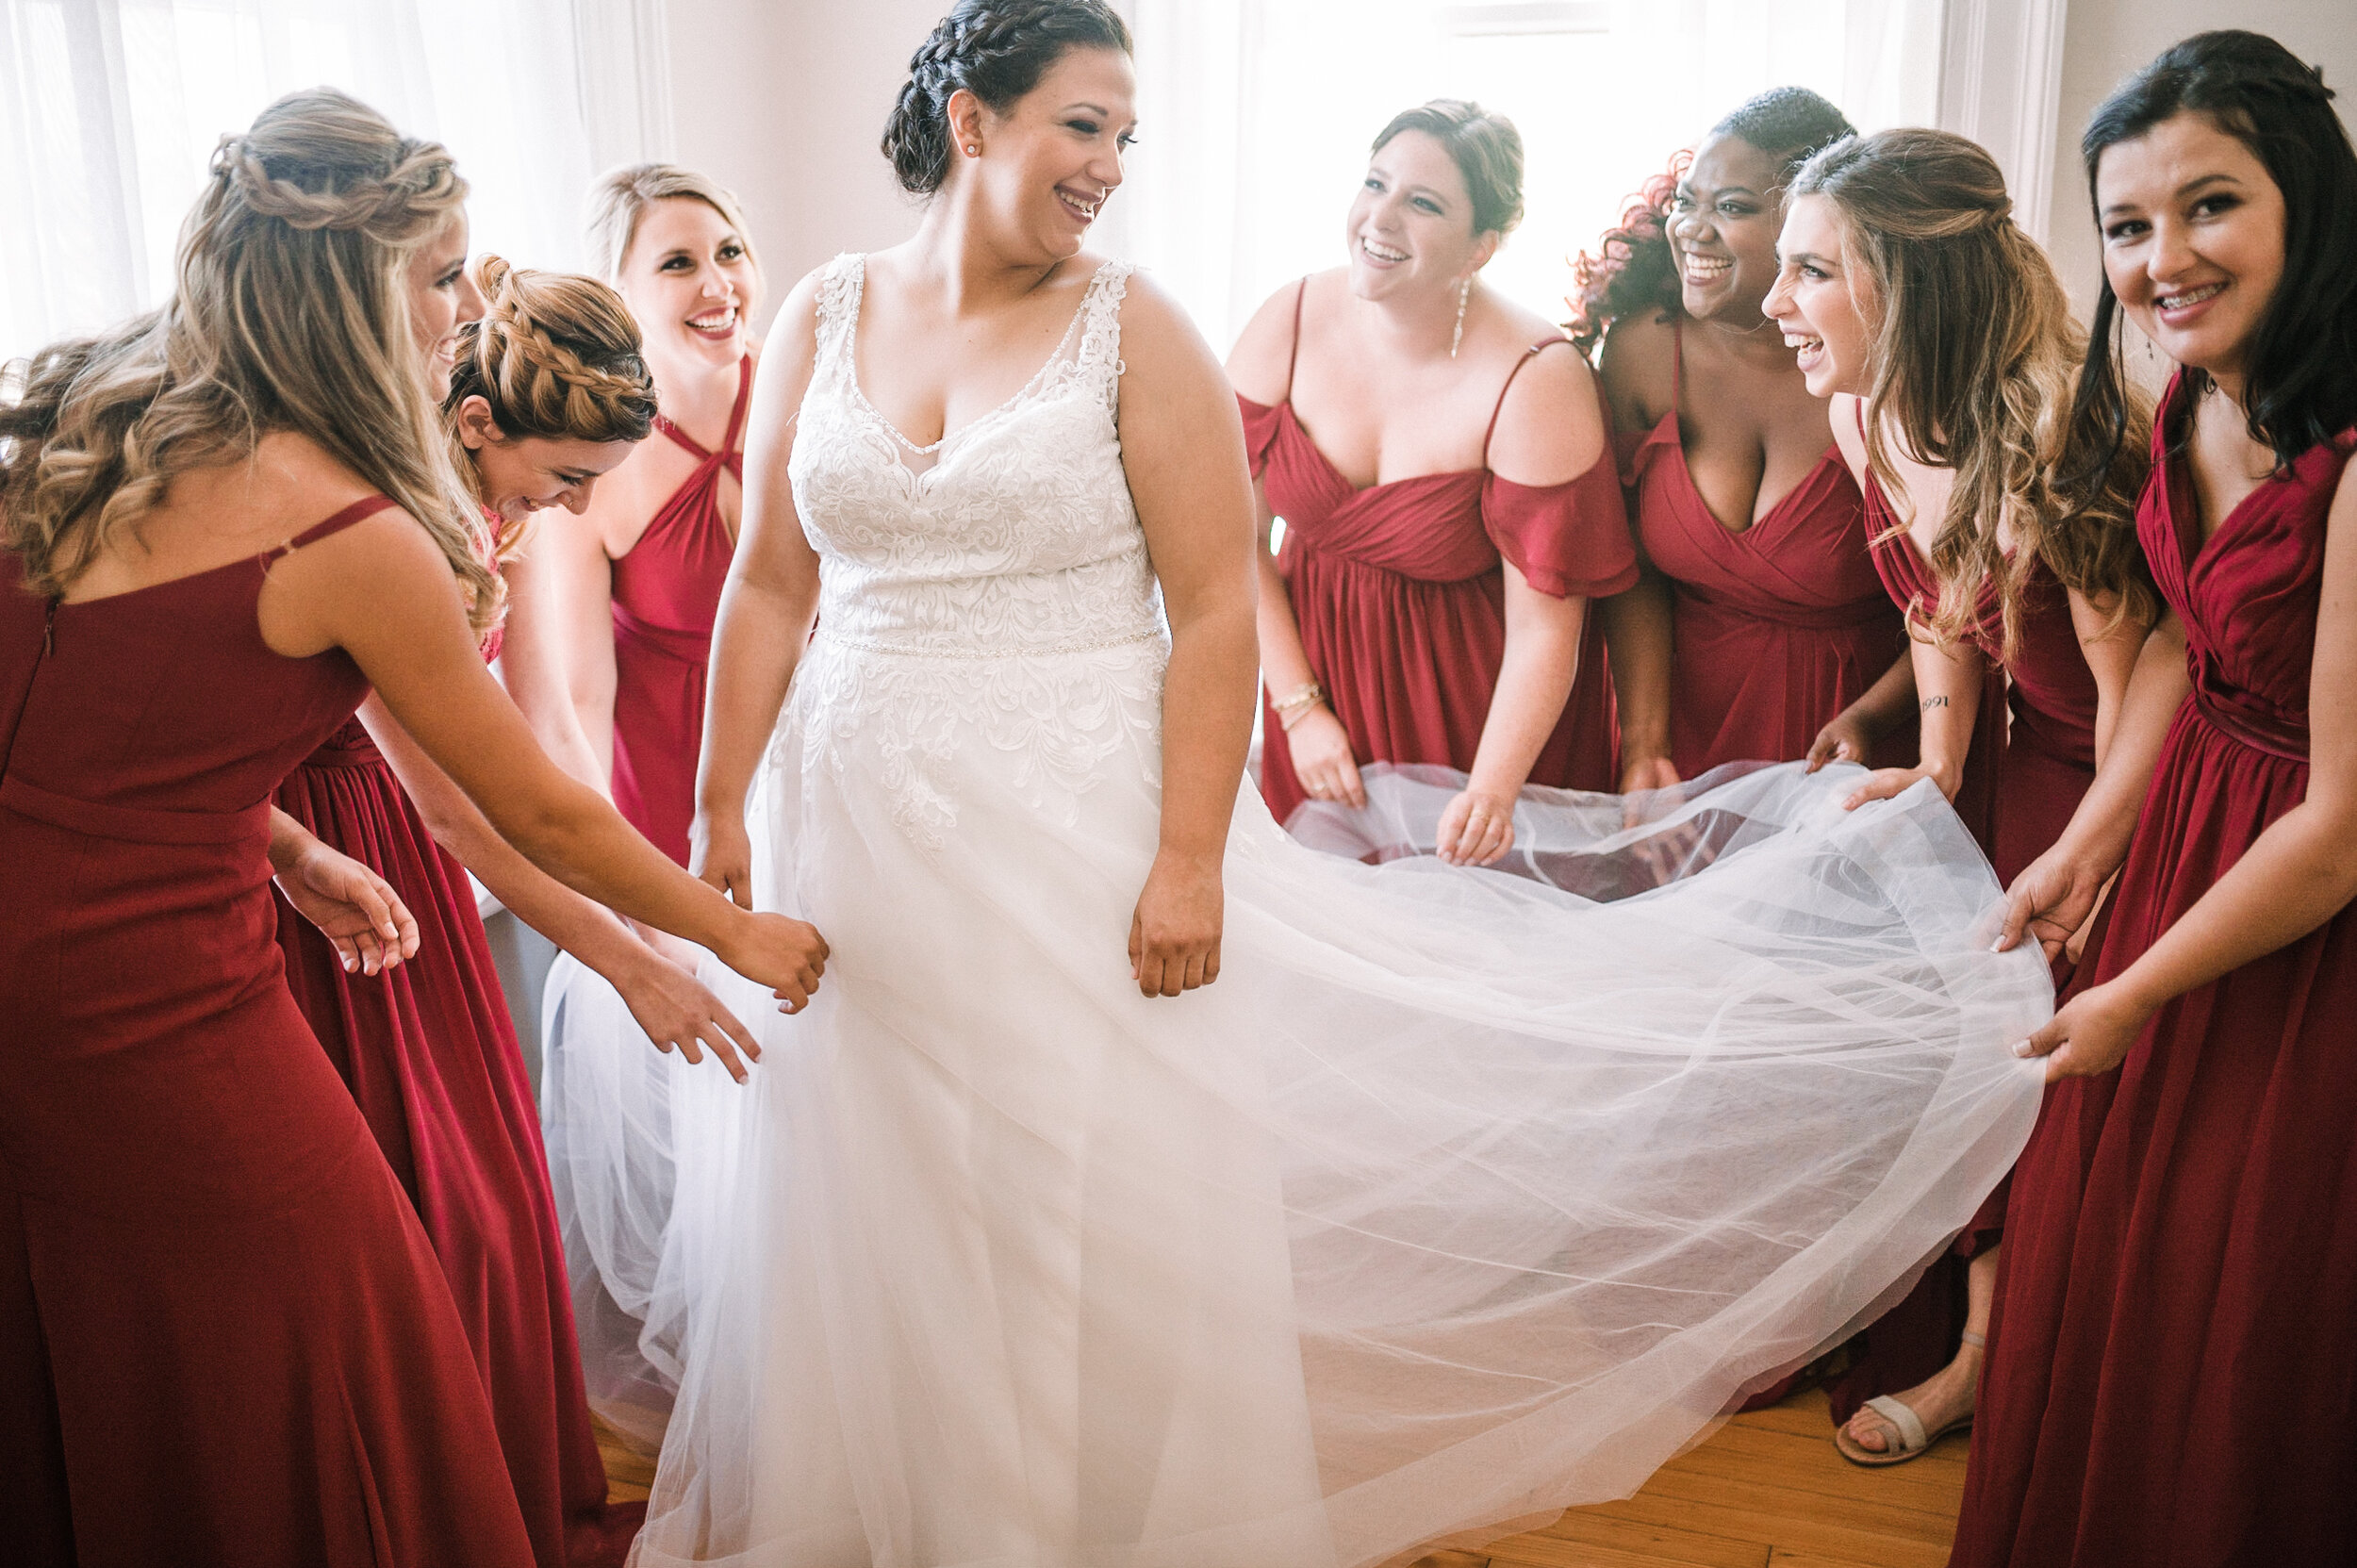 bride and bridesmaids getting ready at The Inn at Vint Hill